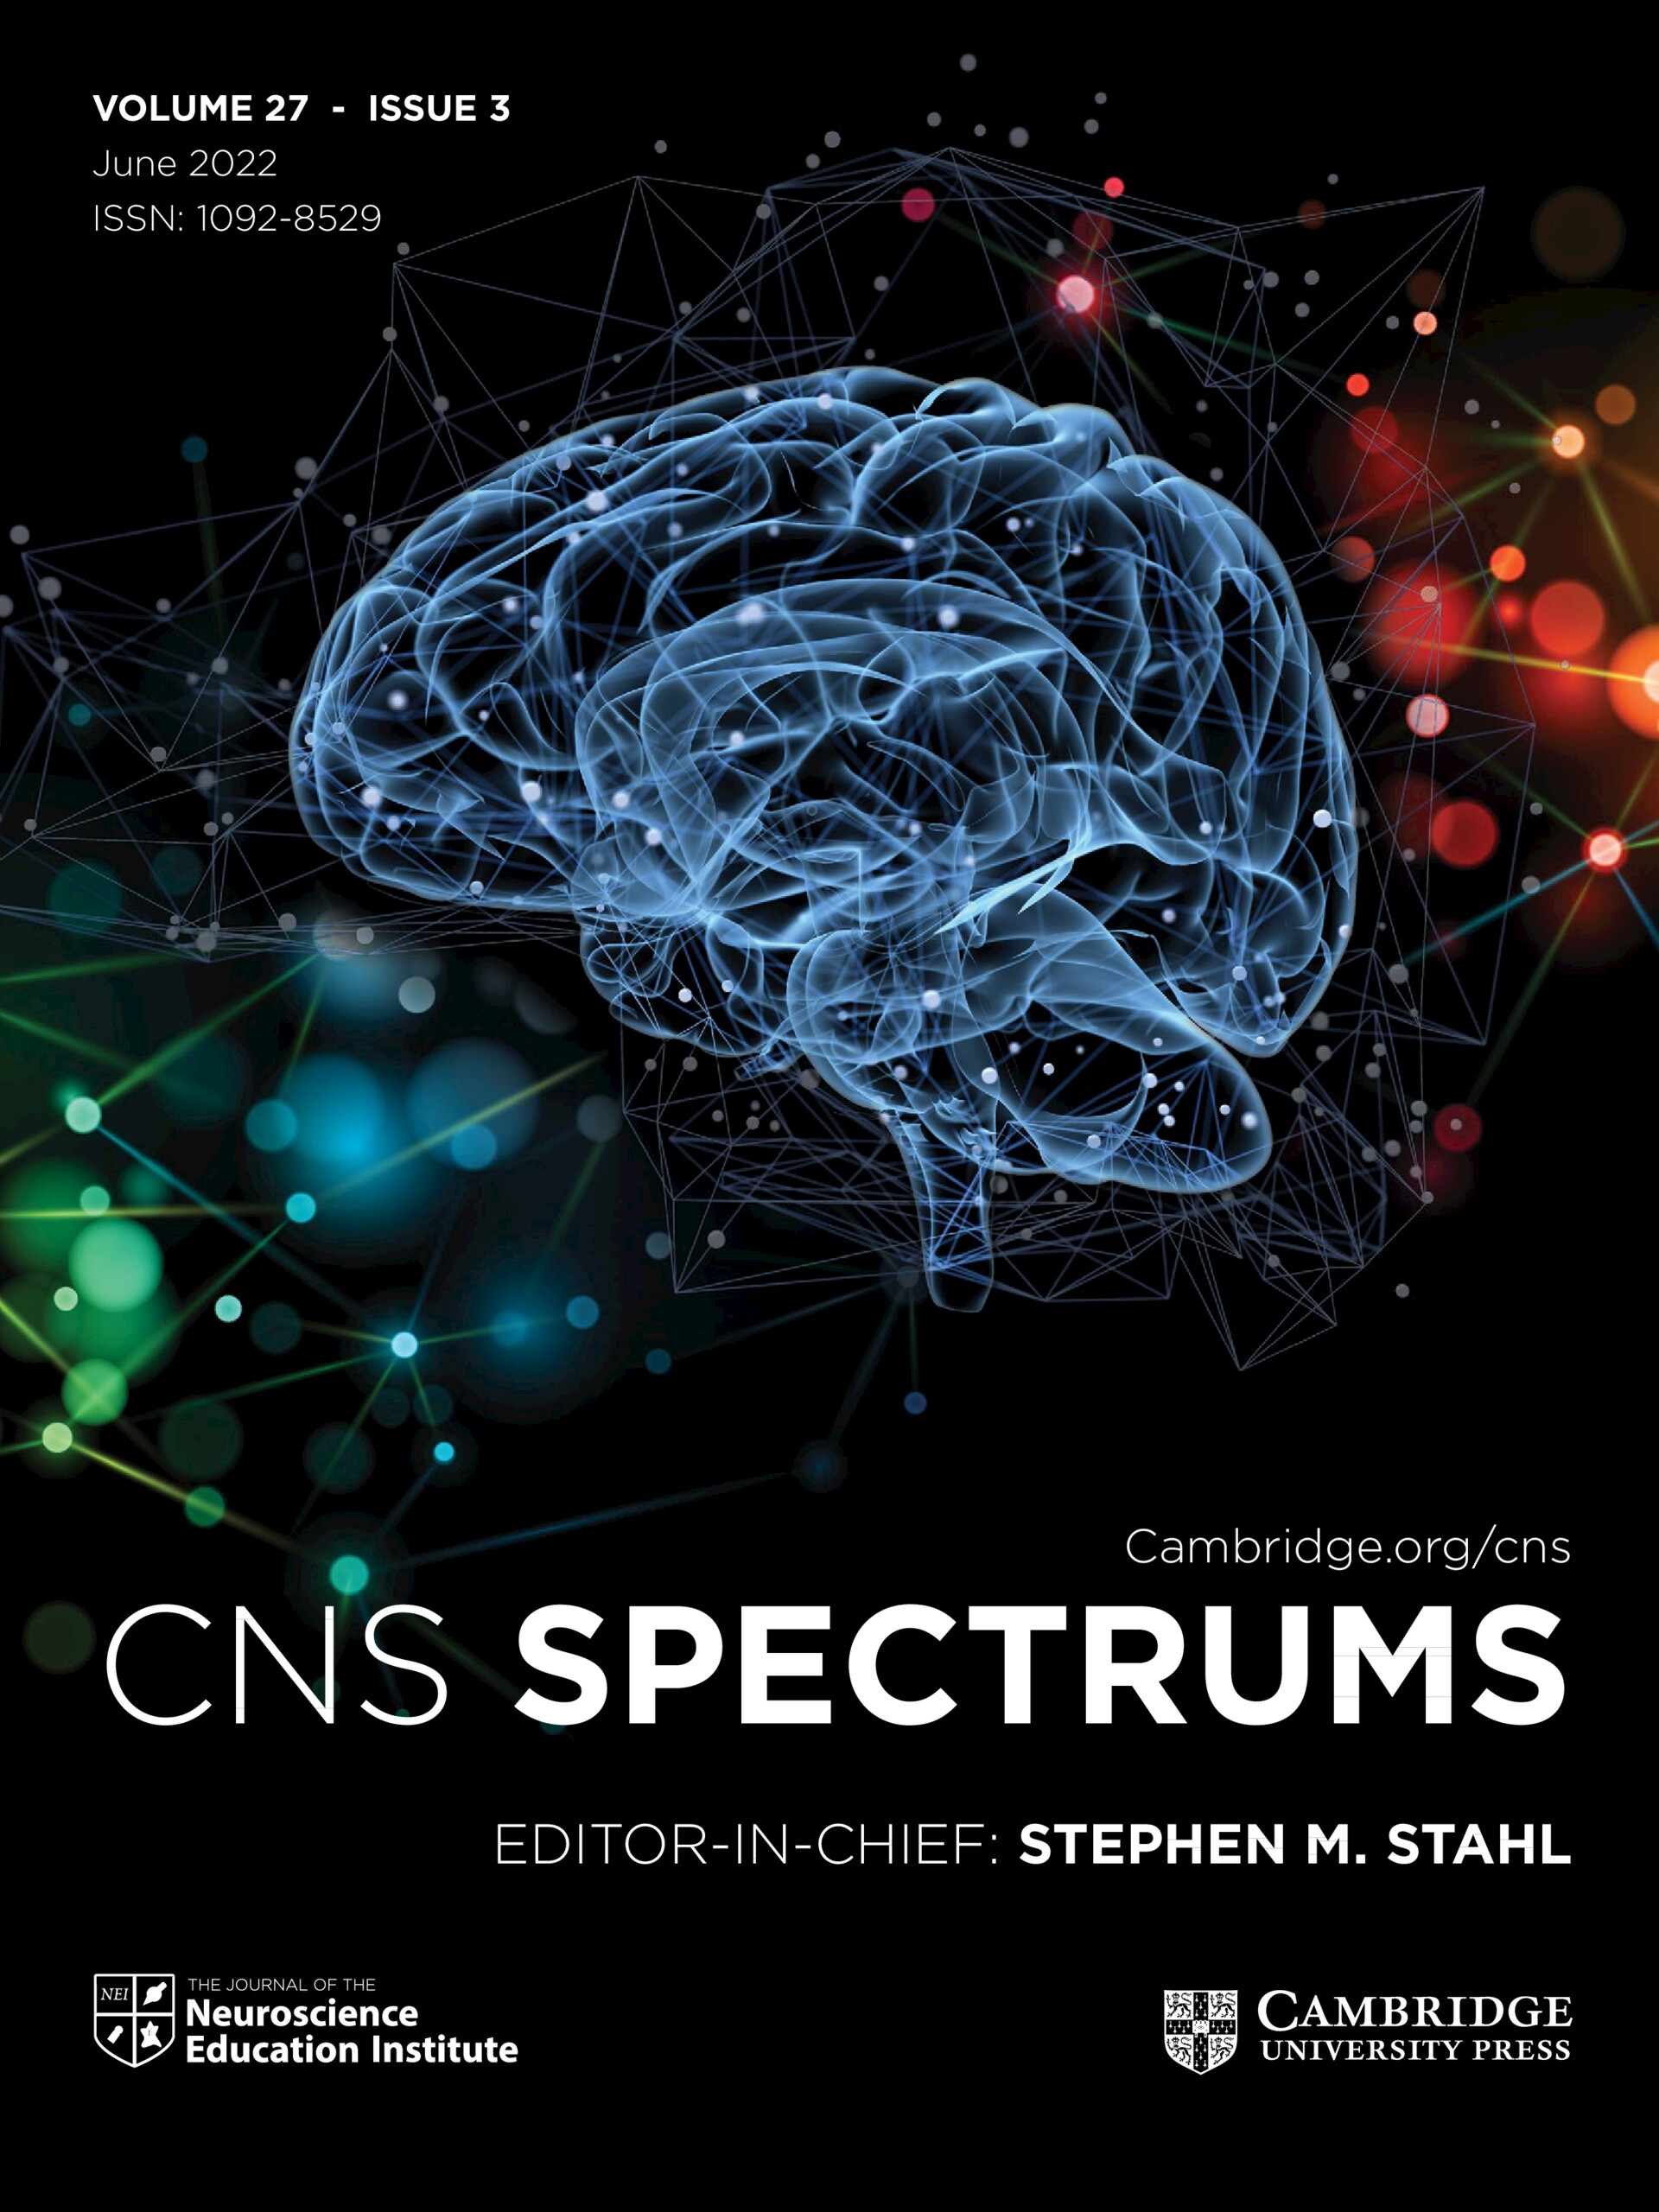 Perampanel-Induced Cataplexy in a Young Male with Generalized Epilepsy | CNS Spectrums | Cambridge Core